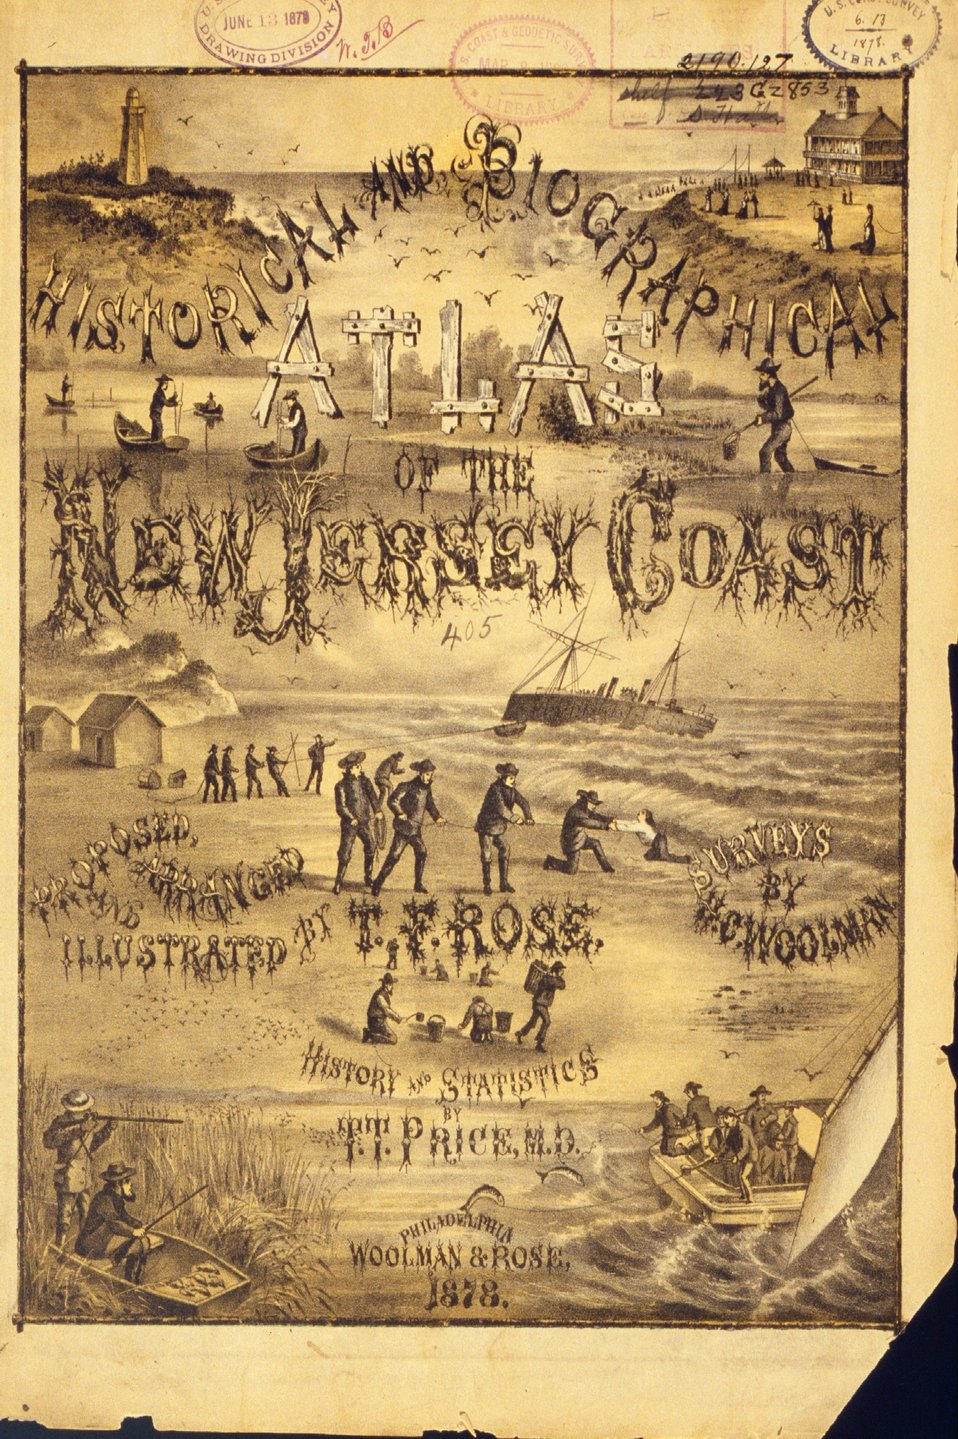 Cover of 'Historical and Biographical Atlas of the New Jersey Coast.'